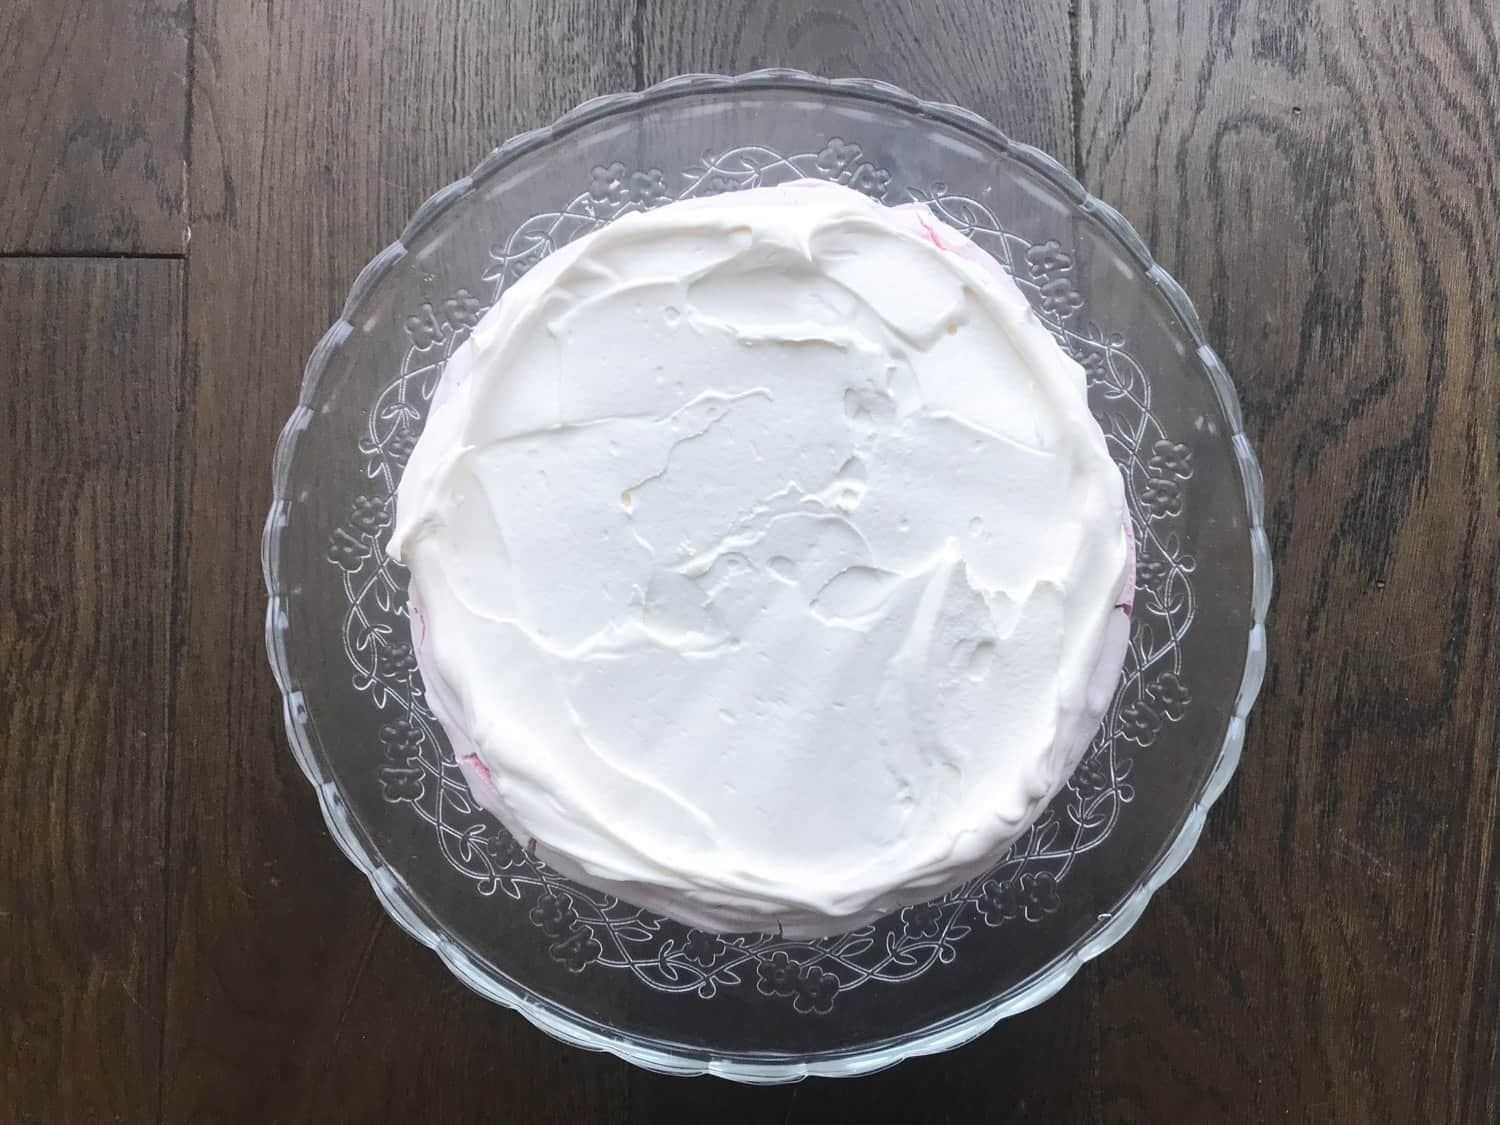 Whipped cream spread onto meringue